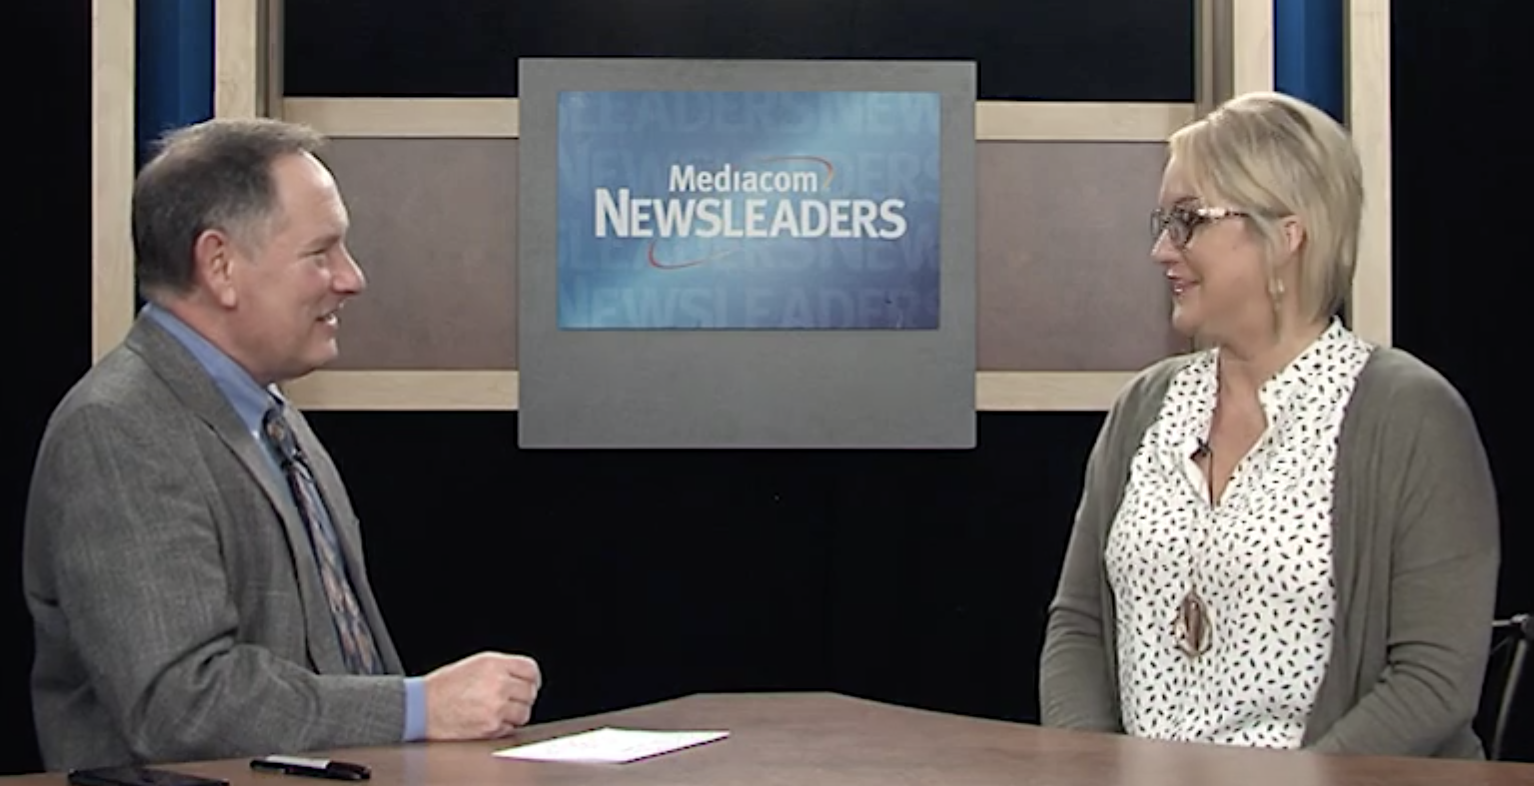 Interview with James Mouser: Newsleaders on Mediacom